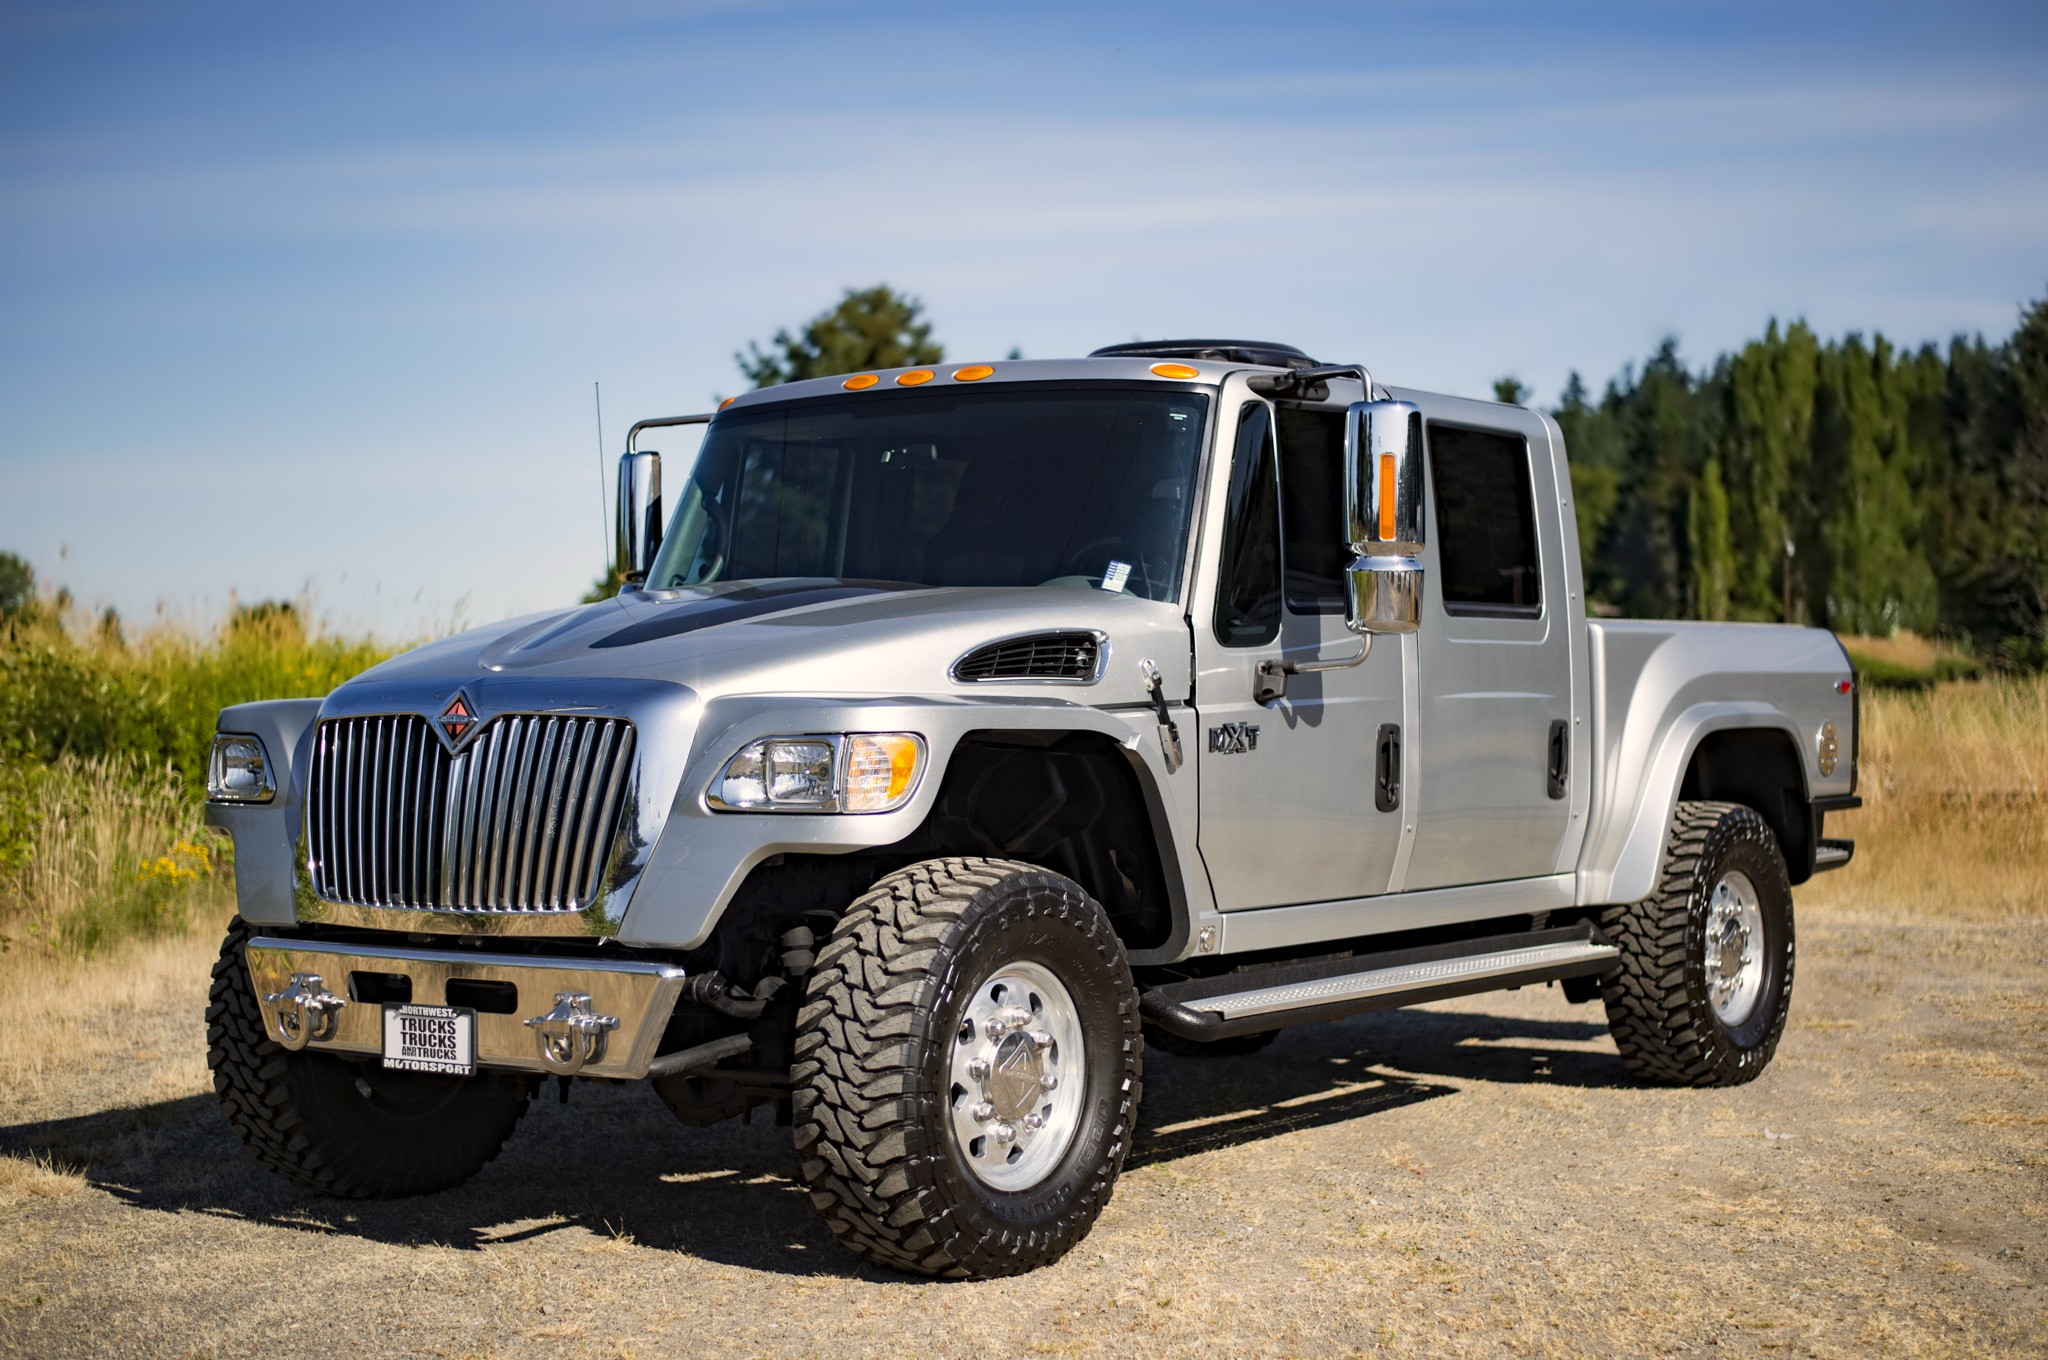 Used 2008 International MXT 4x4 Diesel Truck For Sale